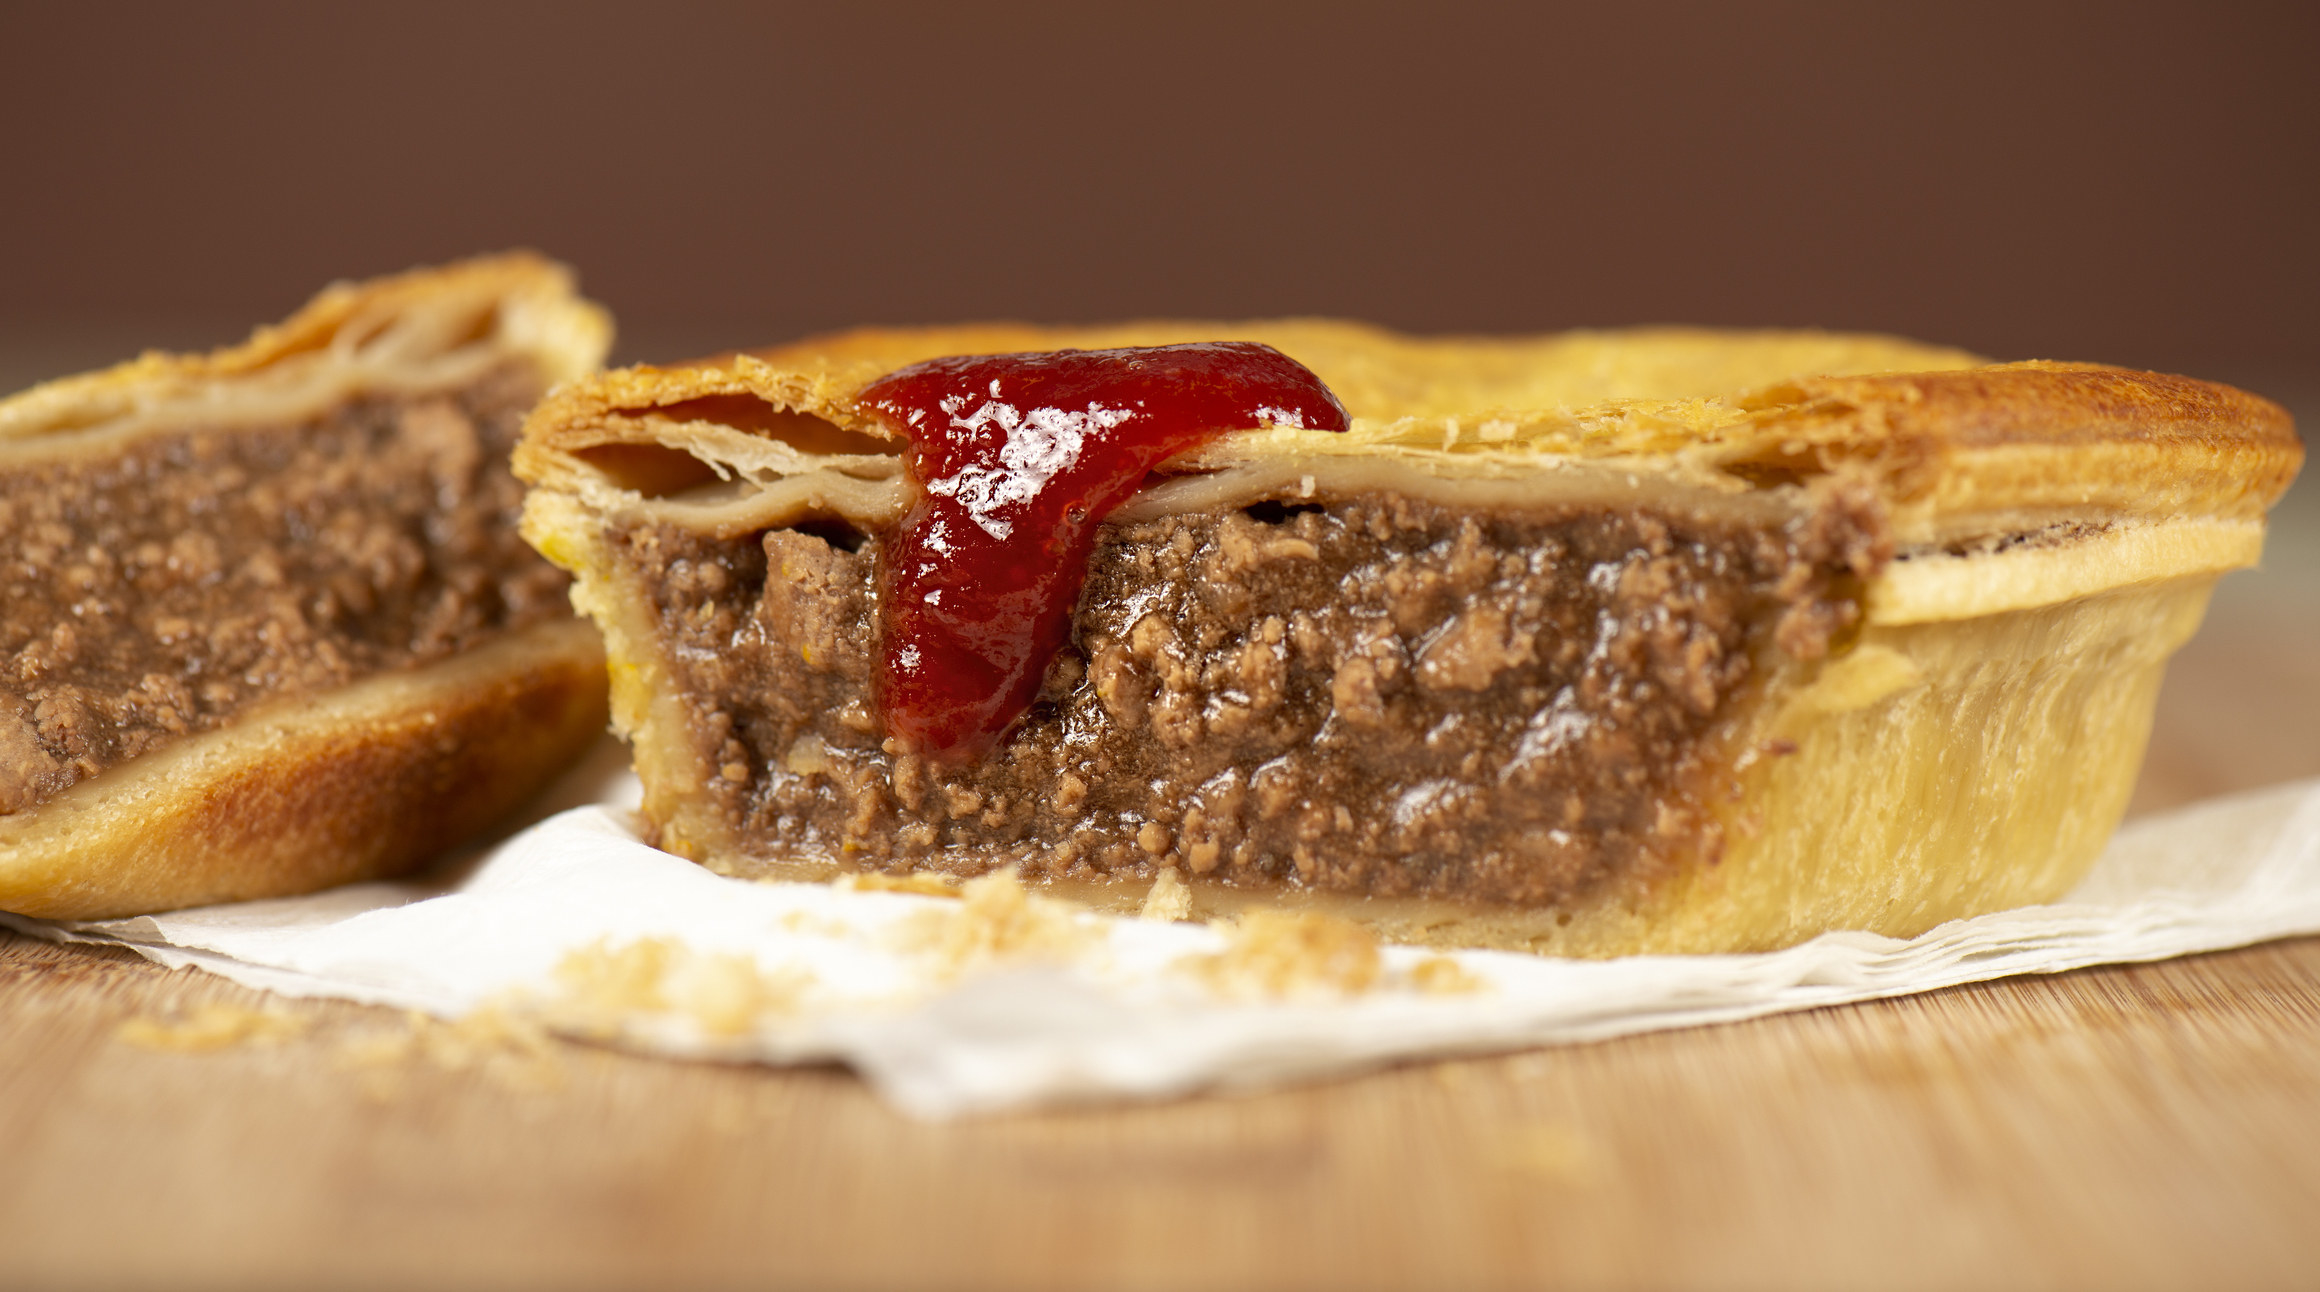 An Australian meat pie with tomato ketchup.